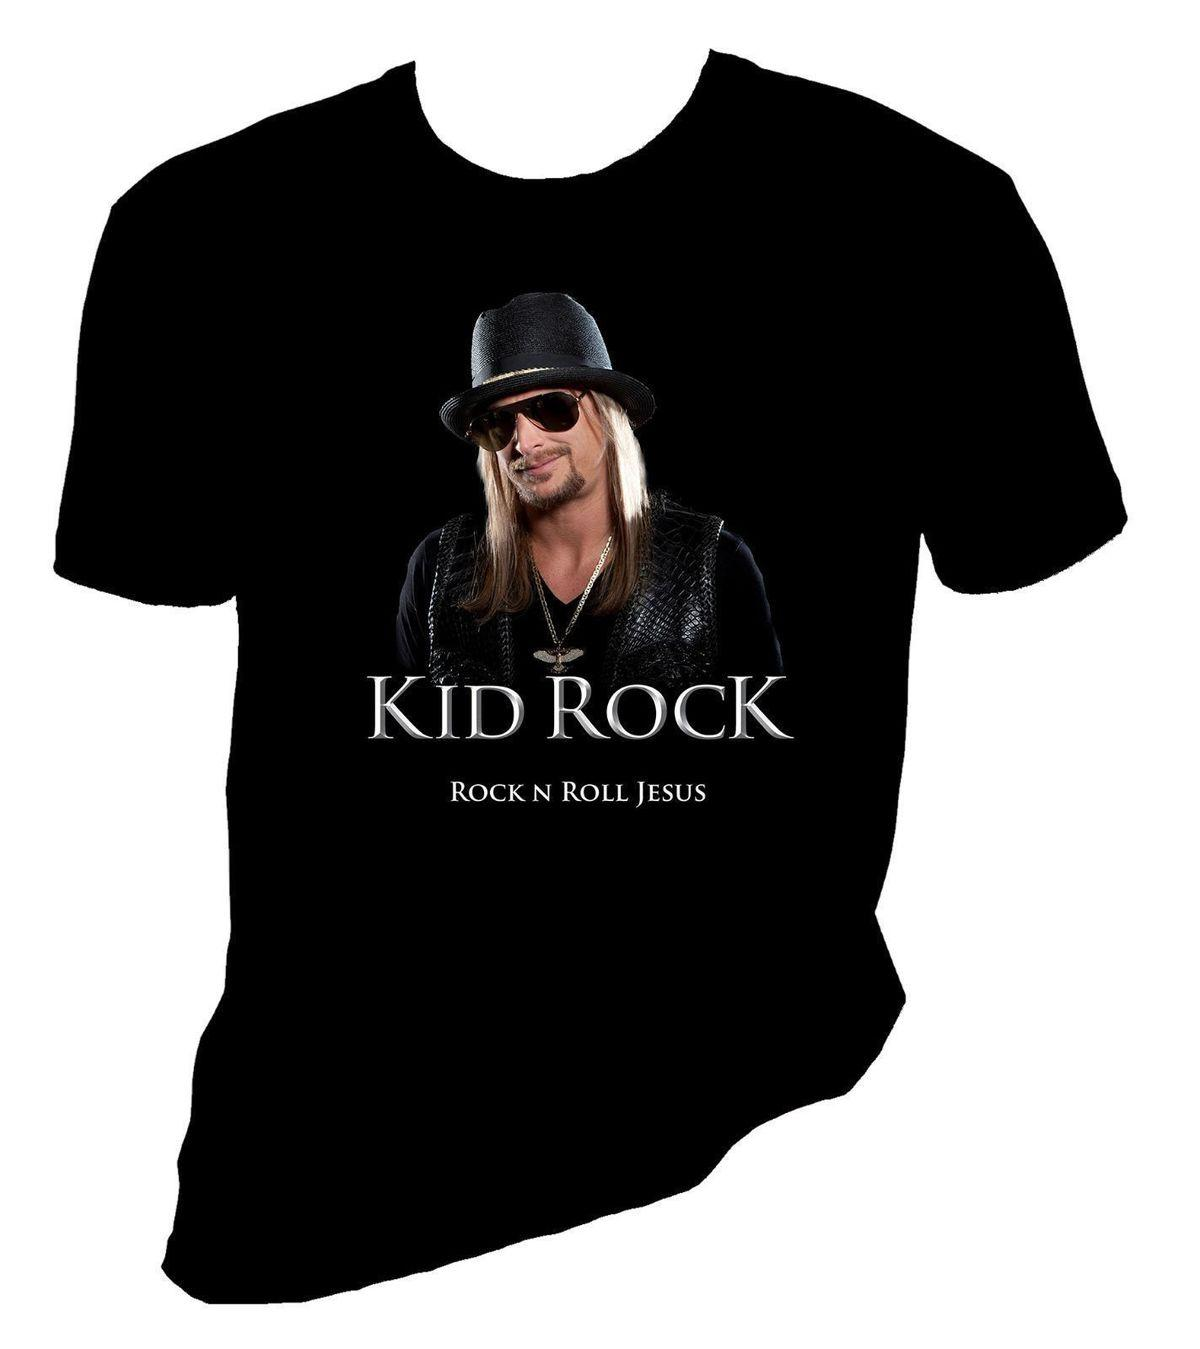 b0b03d6c141 Kid Rock T Shirt Rock N Roll Jesus Cool T Shirts Designs Best Selling Men  Summer 2018 Short Sleeve Plus Size Cool Looking T Shirts Buy Designer Shirts  From ...